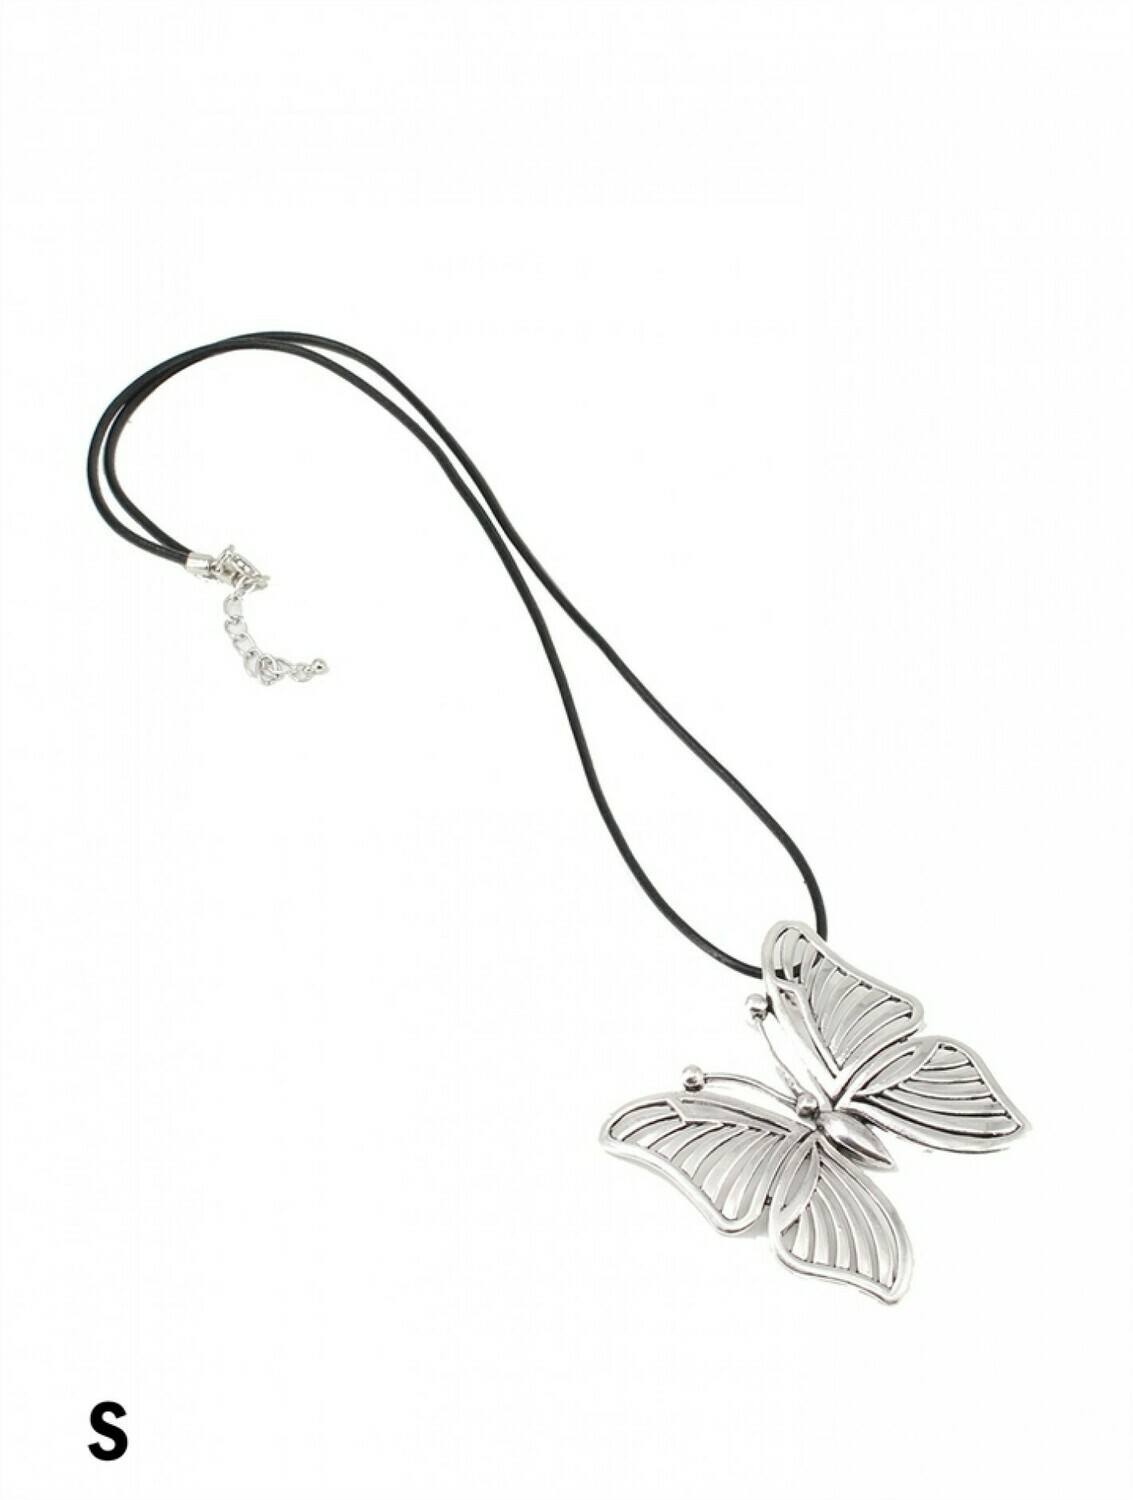 Tilted bUTTERFLY LONG NECKLACE